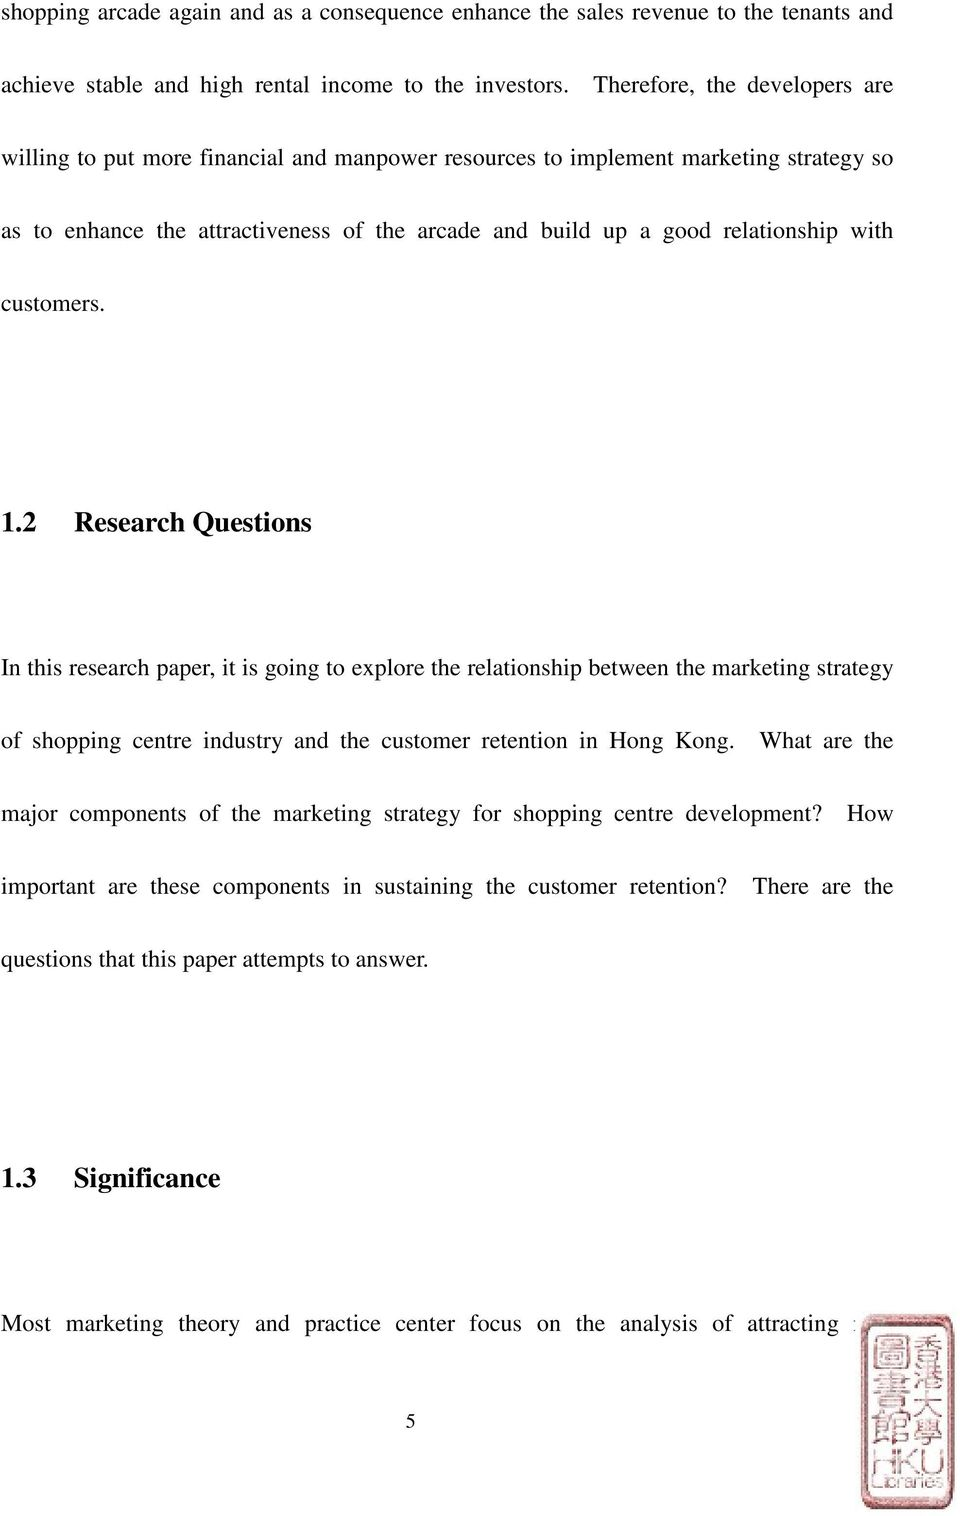 research papers in marketing